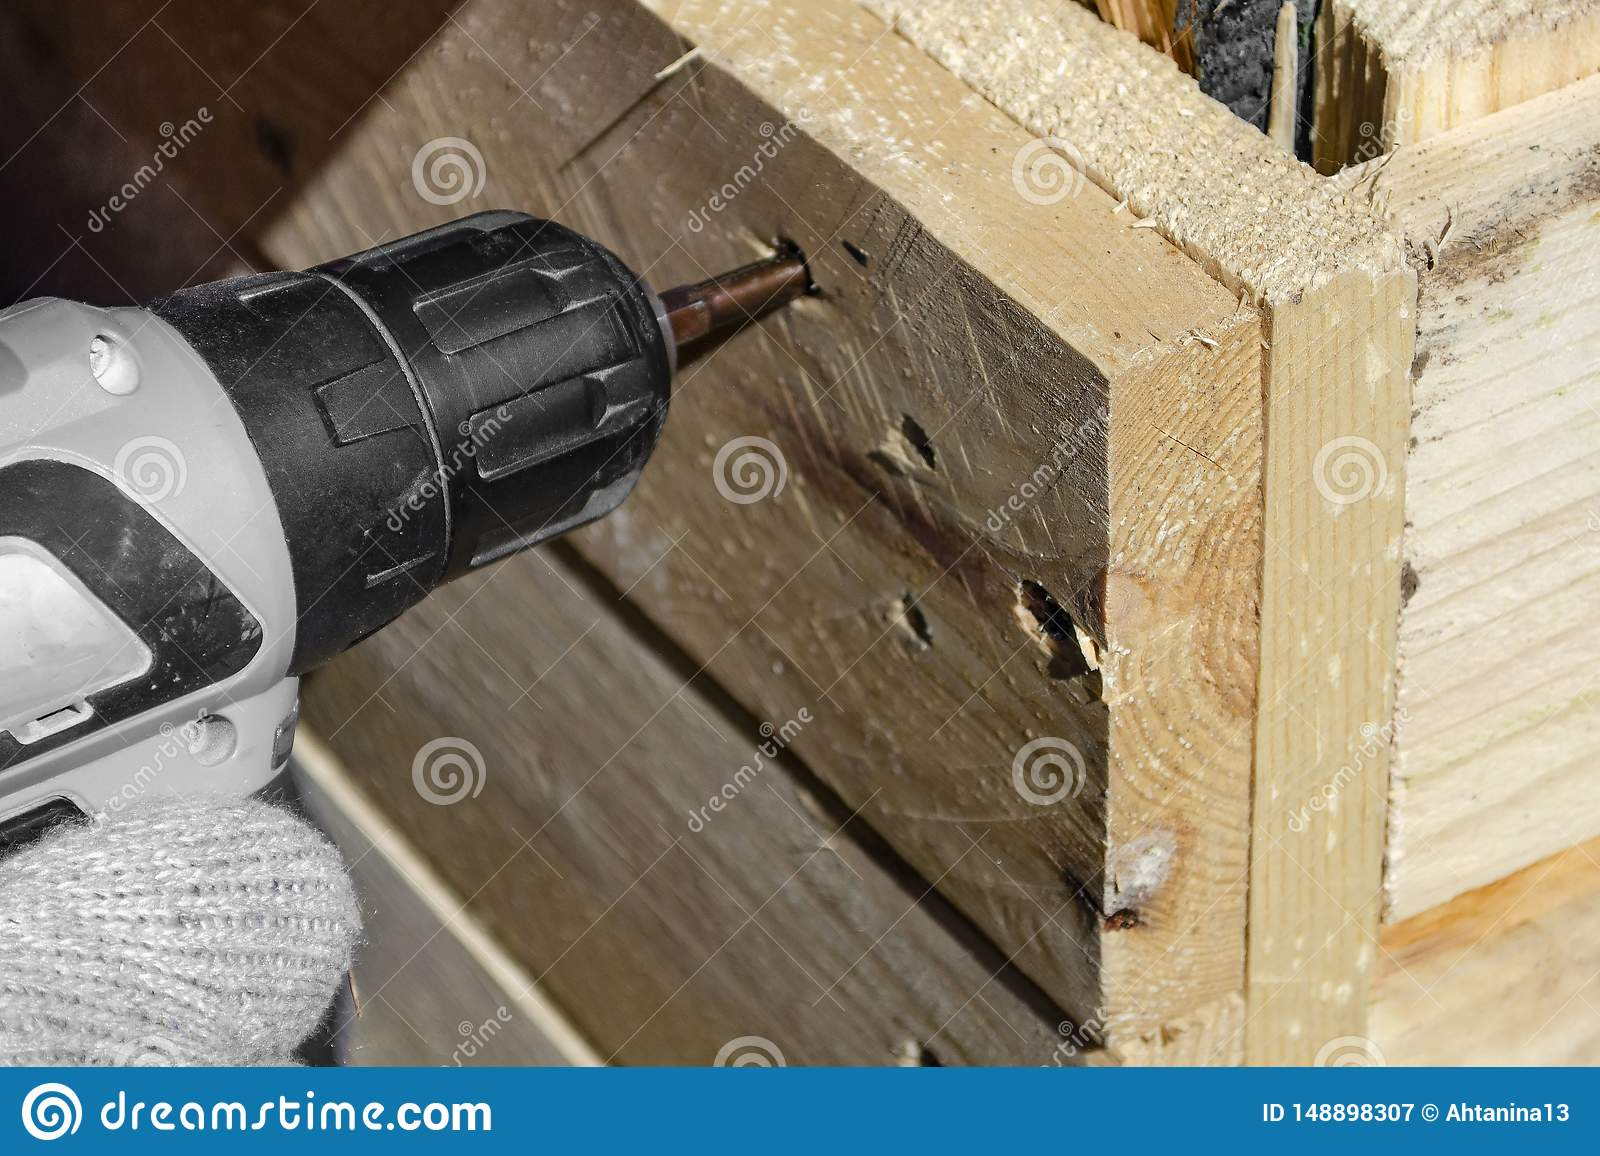 Experienced worker in a carpentry workshop creates a wooden product with raw boards and connects them with screws